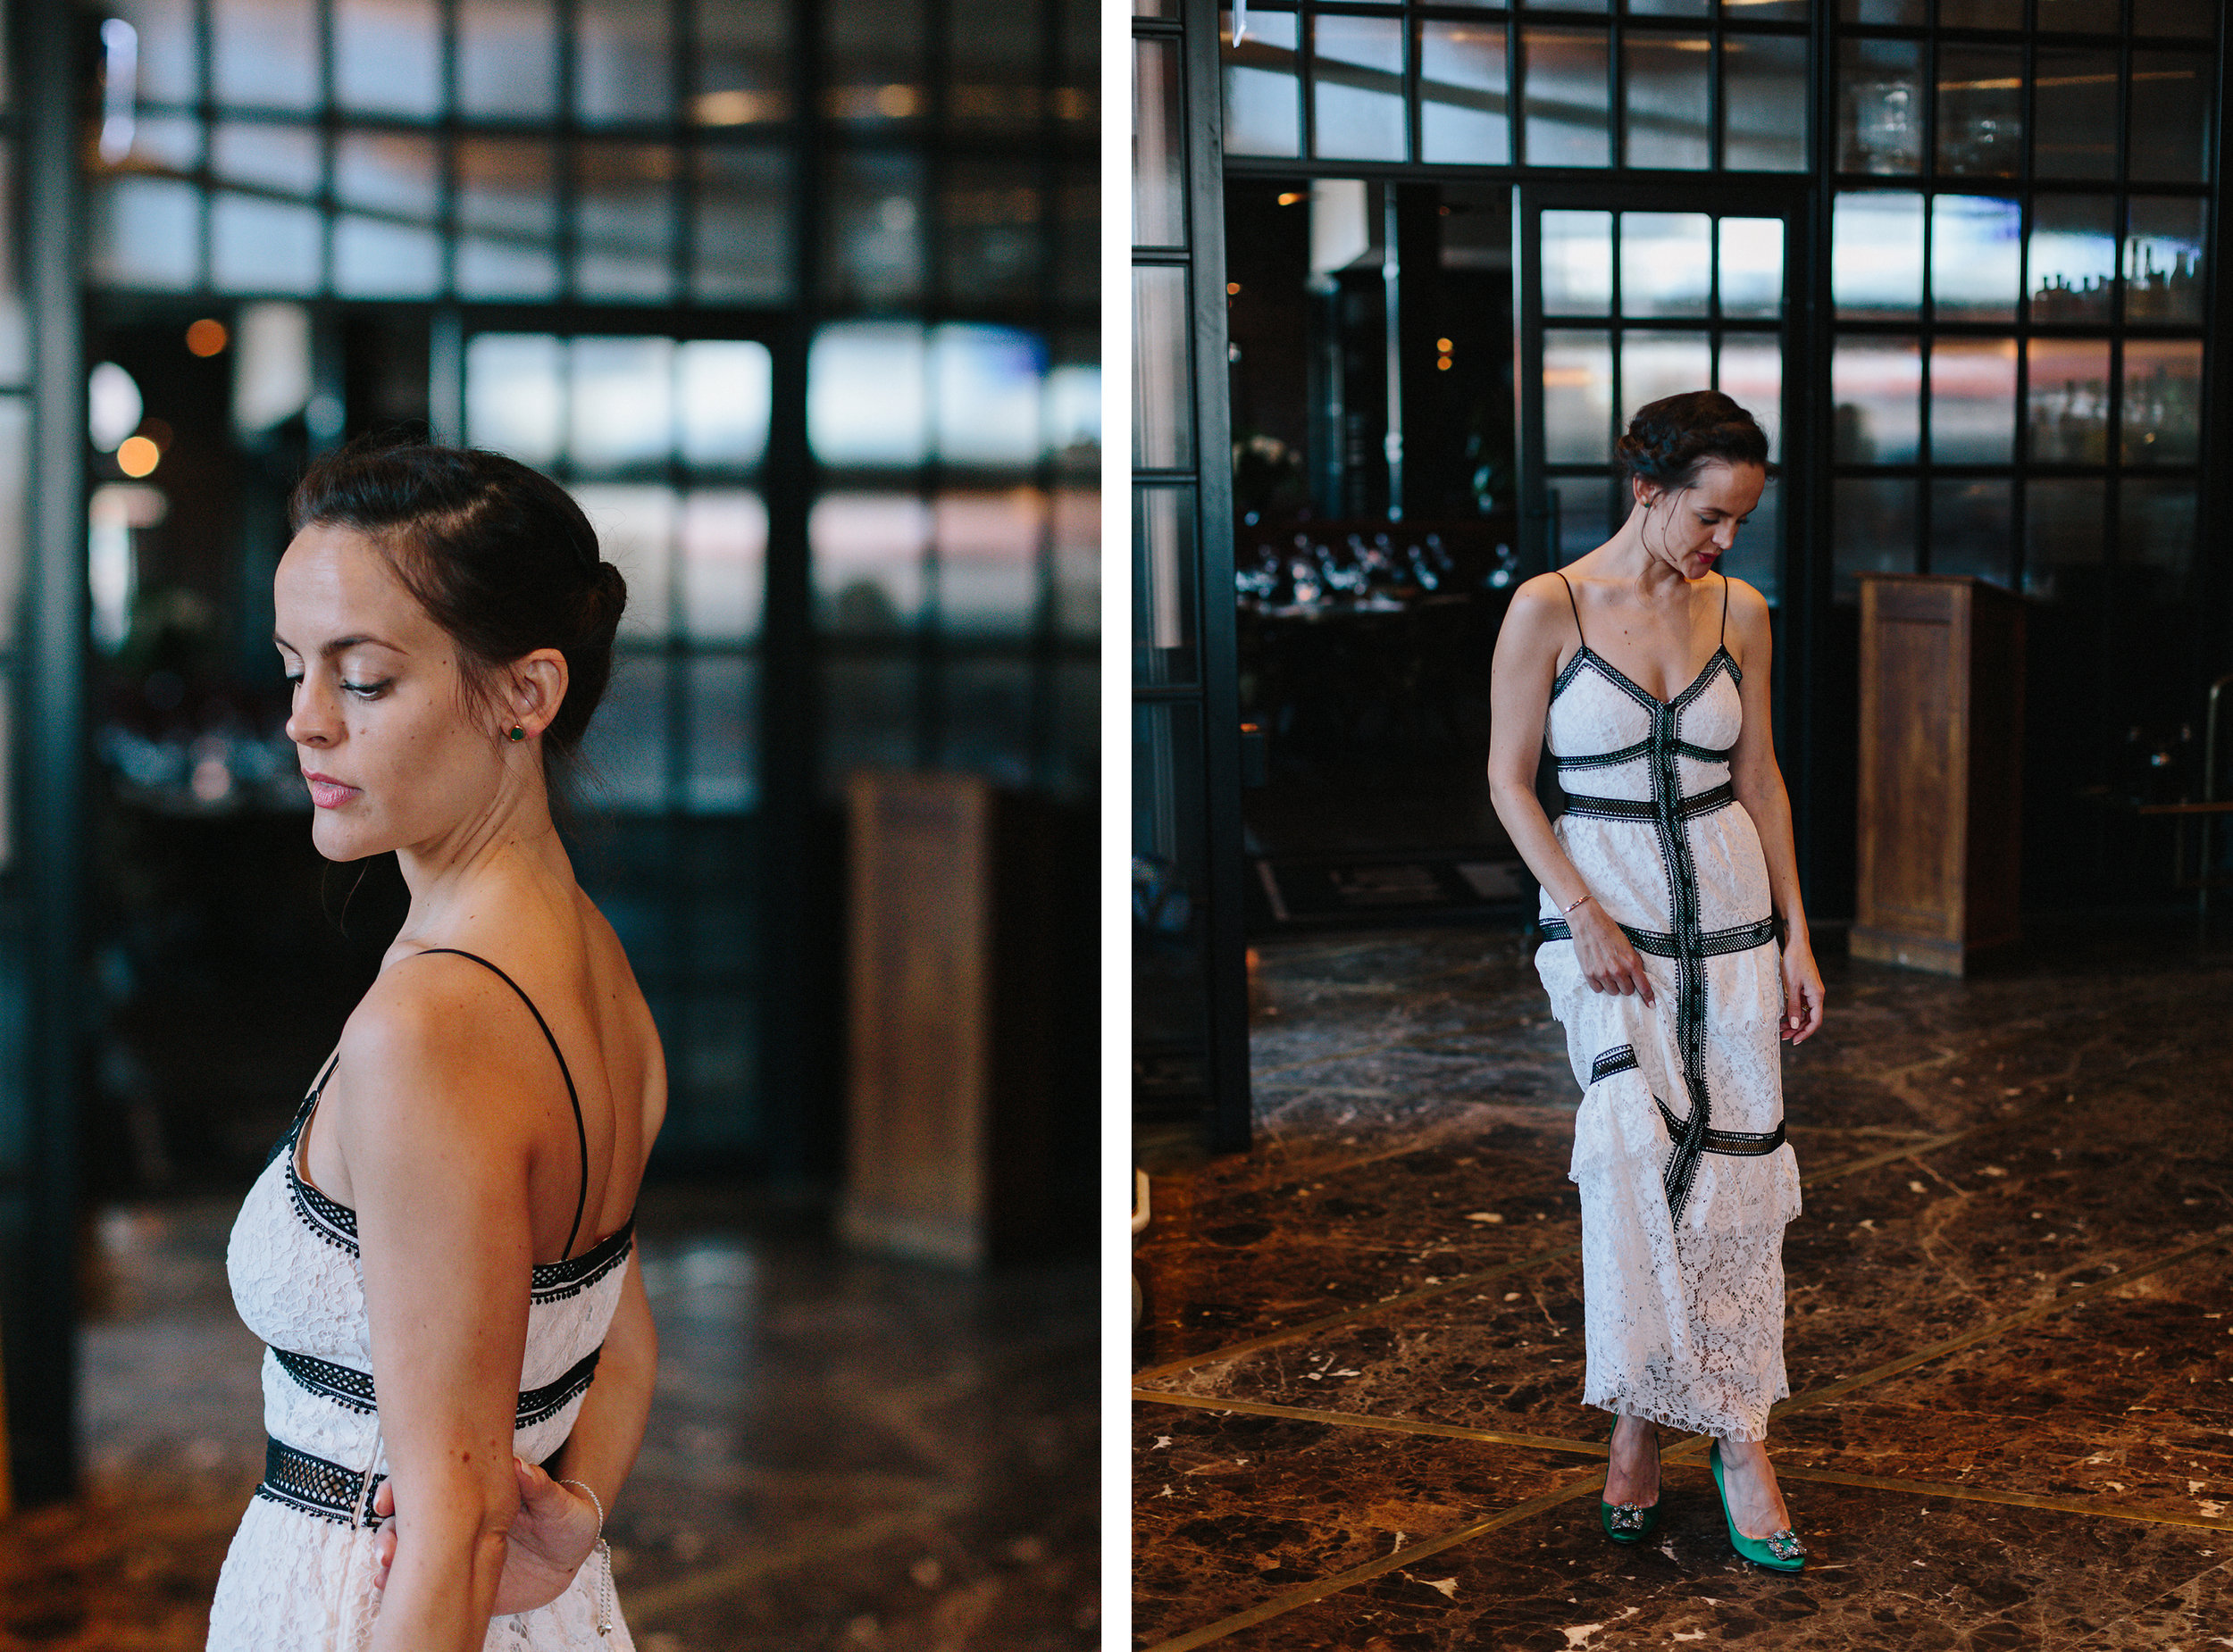 Graydon-Hall-Manor-Wedding-Toronto's-Best-Wedding-Photography-Ryanne-Hollies-Intimate-Small-Modern-Colourful-brunch-wedding-ceremony-bride-and-bridesmaid-entering.jpg